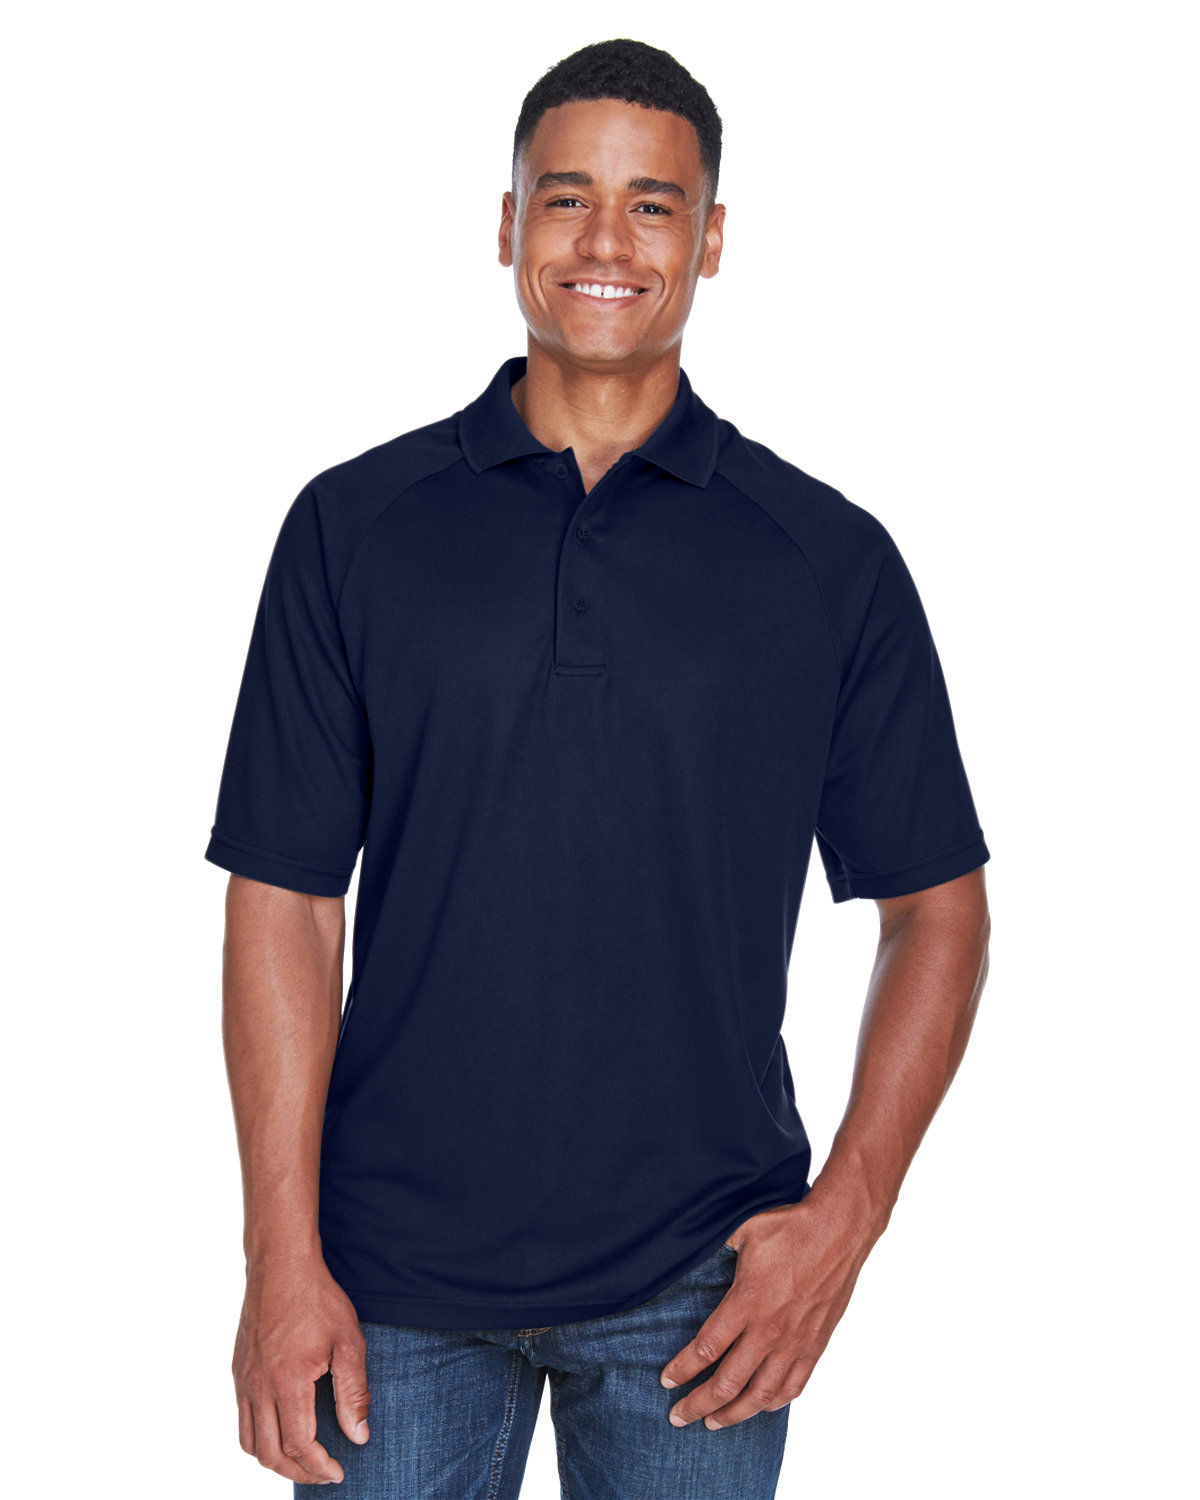 Extreme Men's Eperformance™ Piqué Polo CLASSIC NAVY